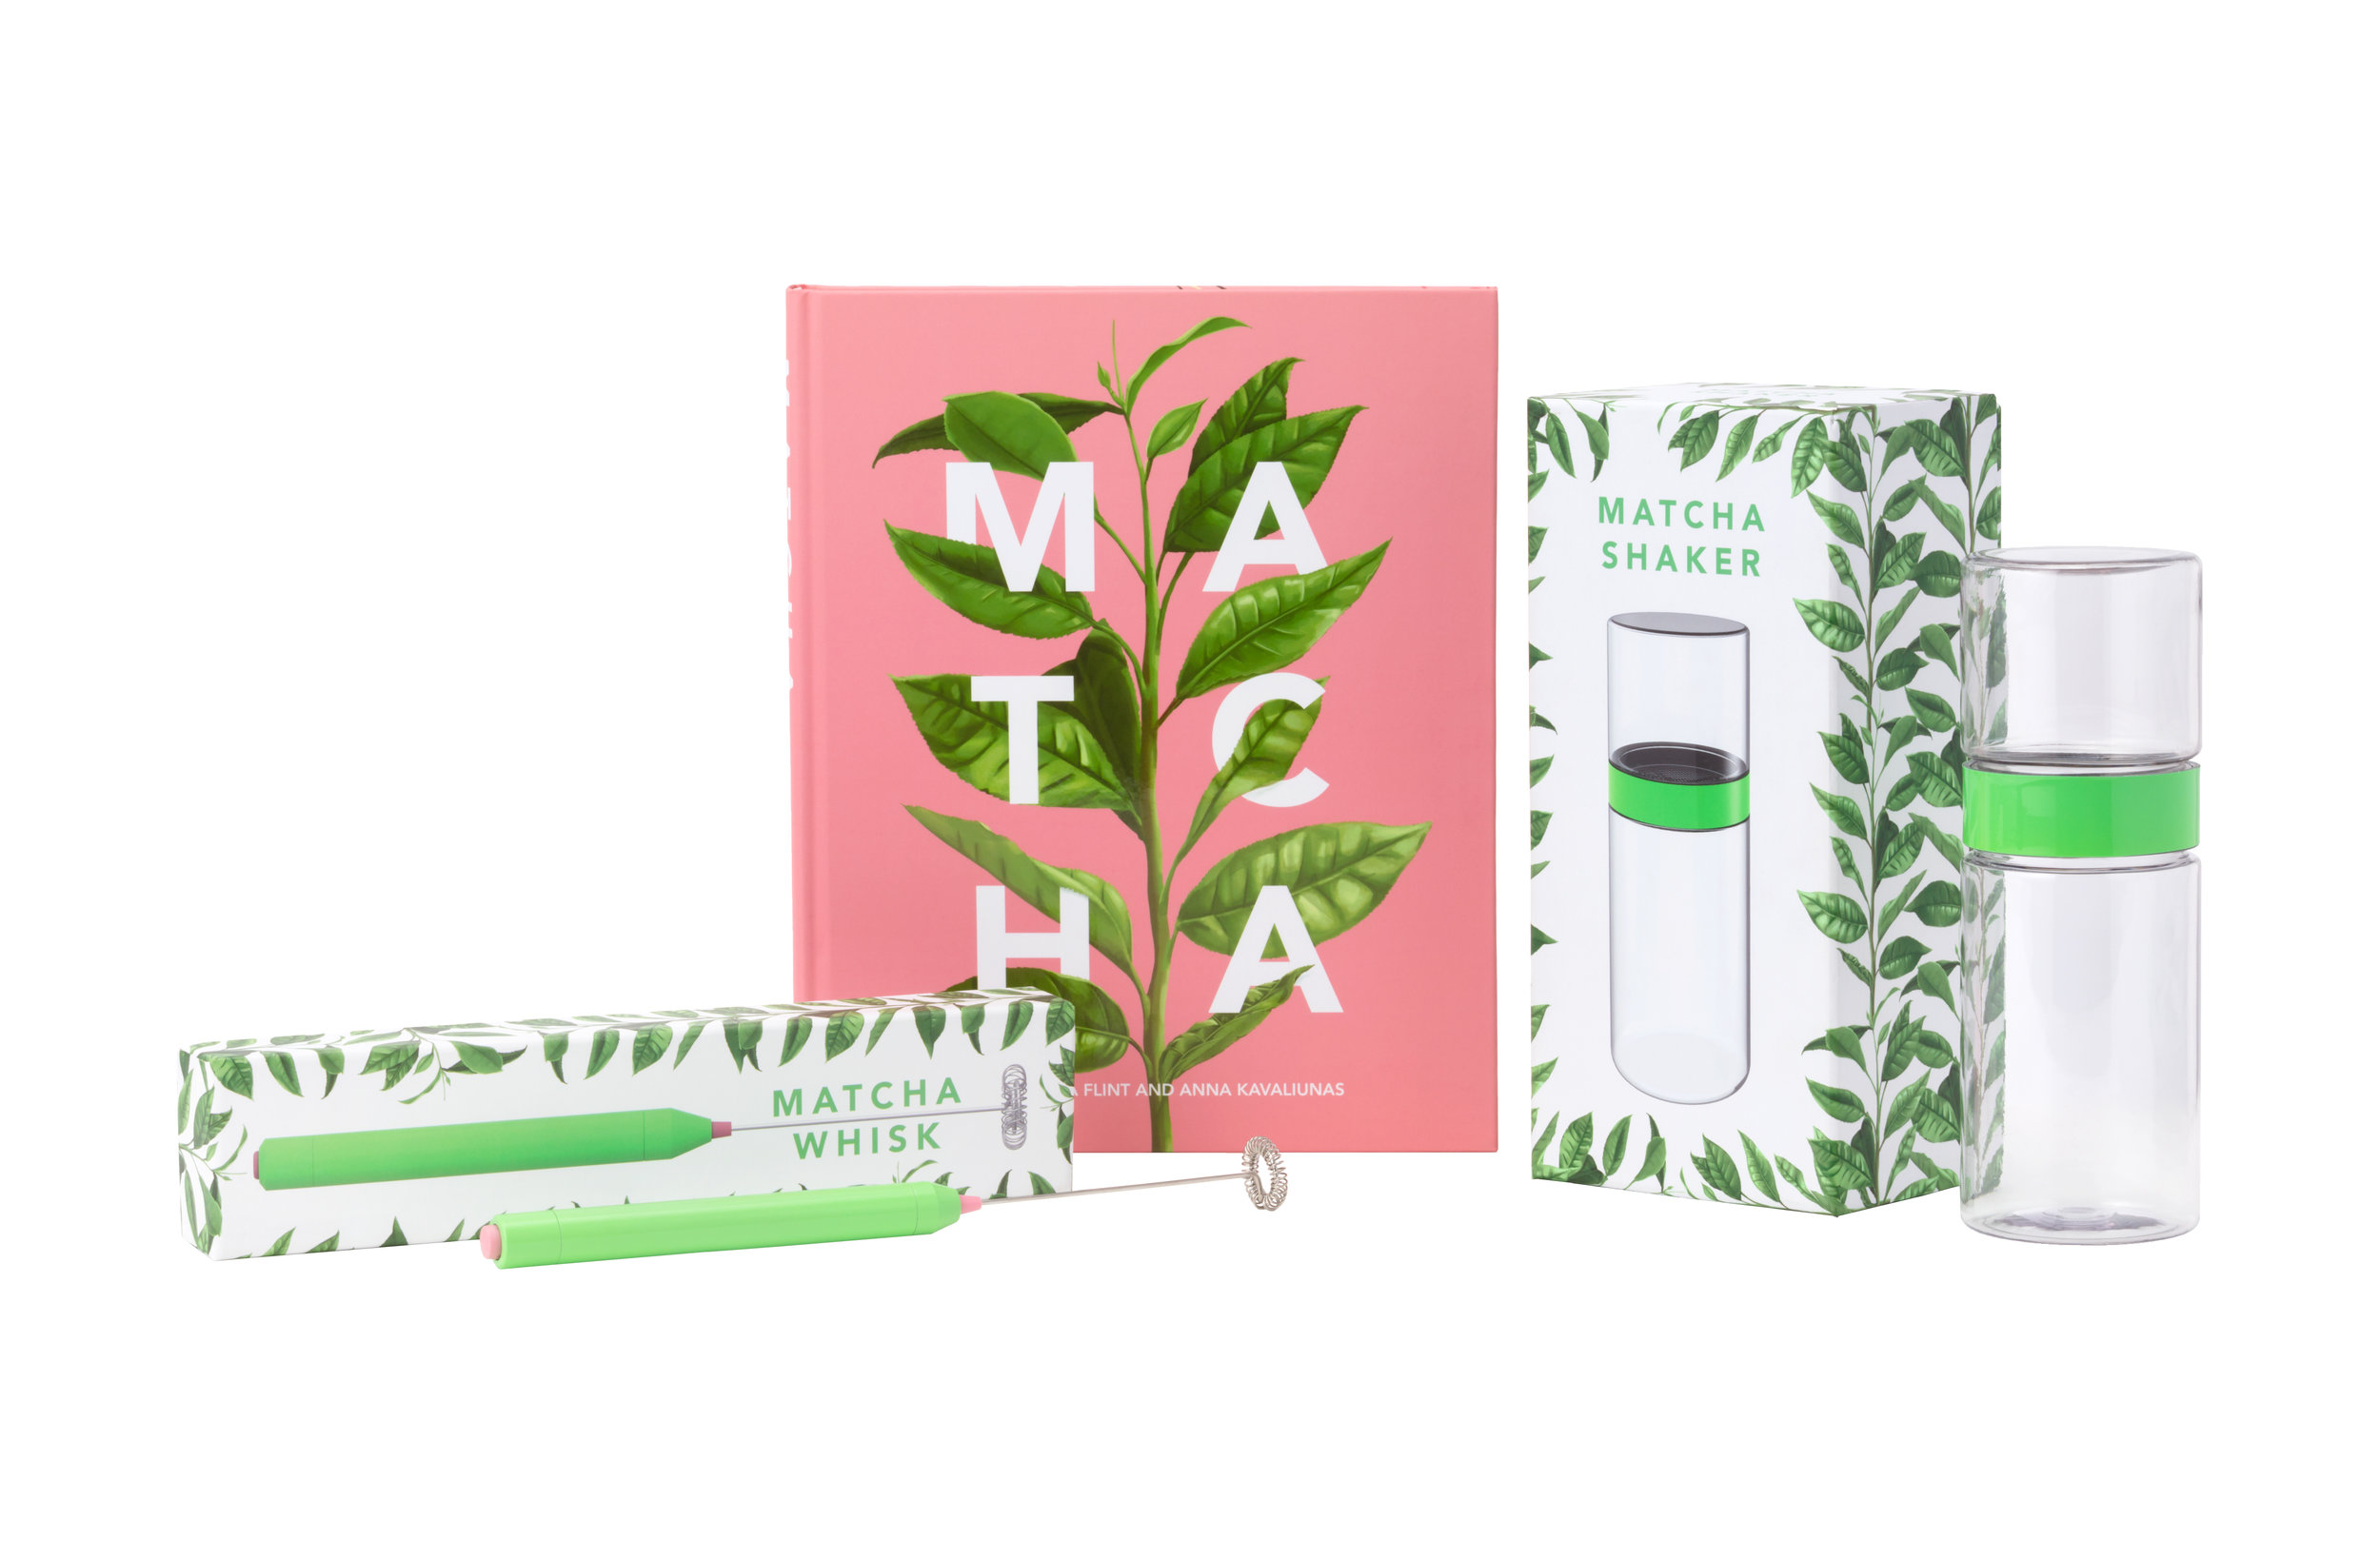 will-pay-matcha-packaging-1